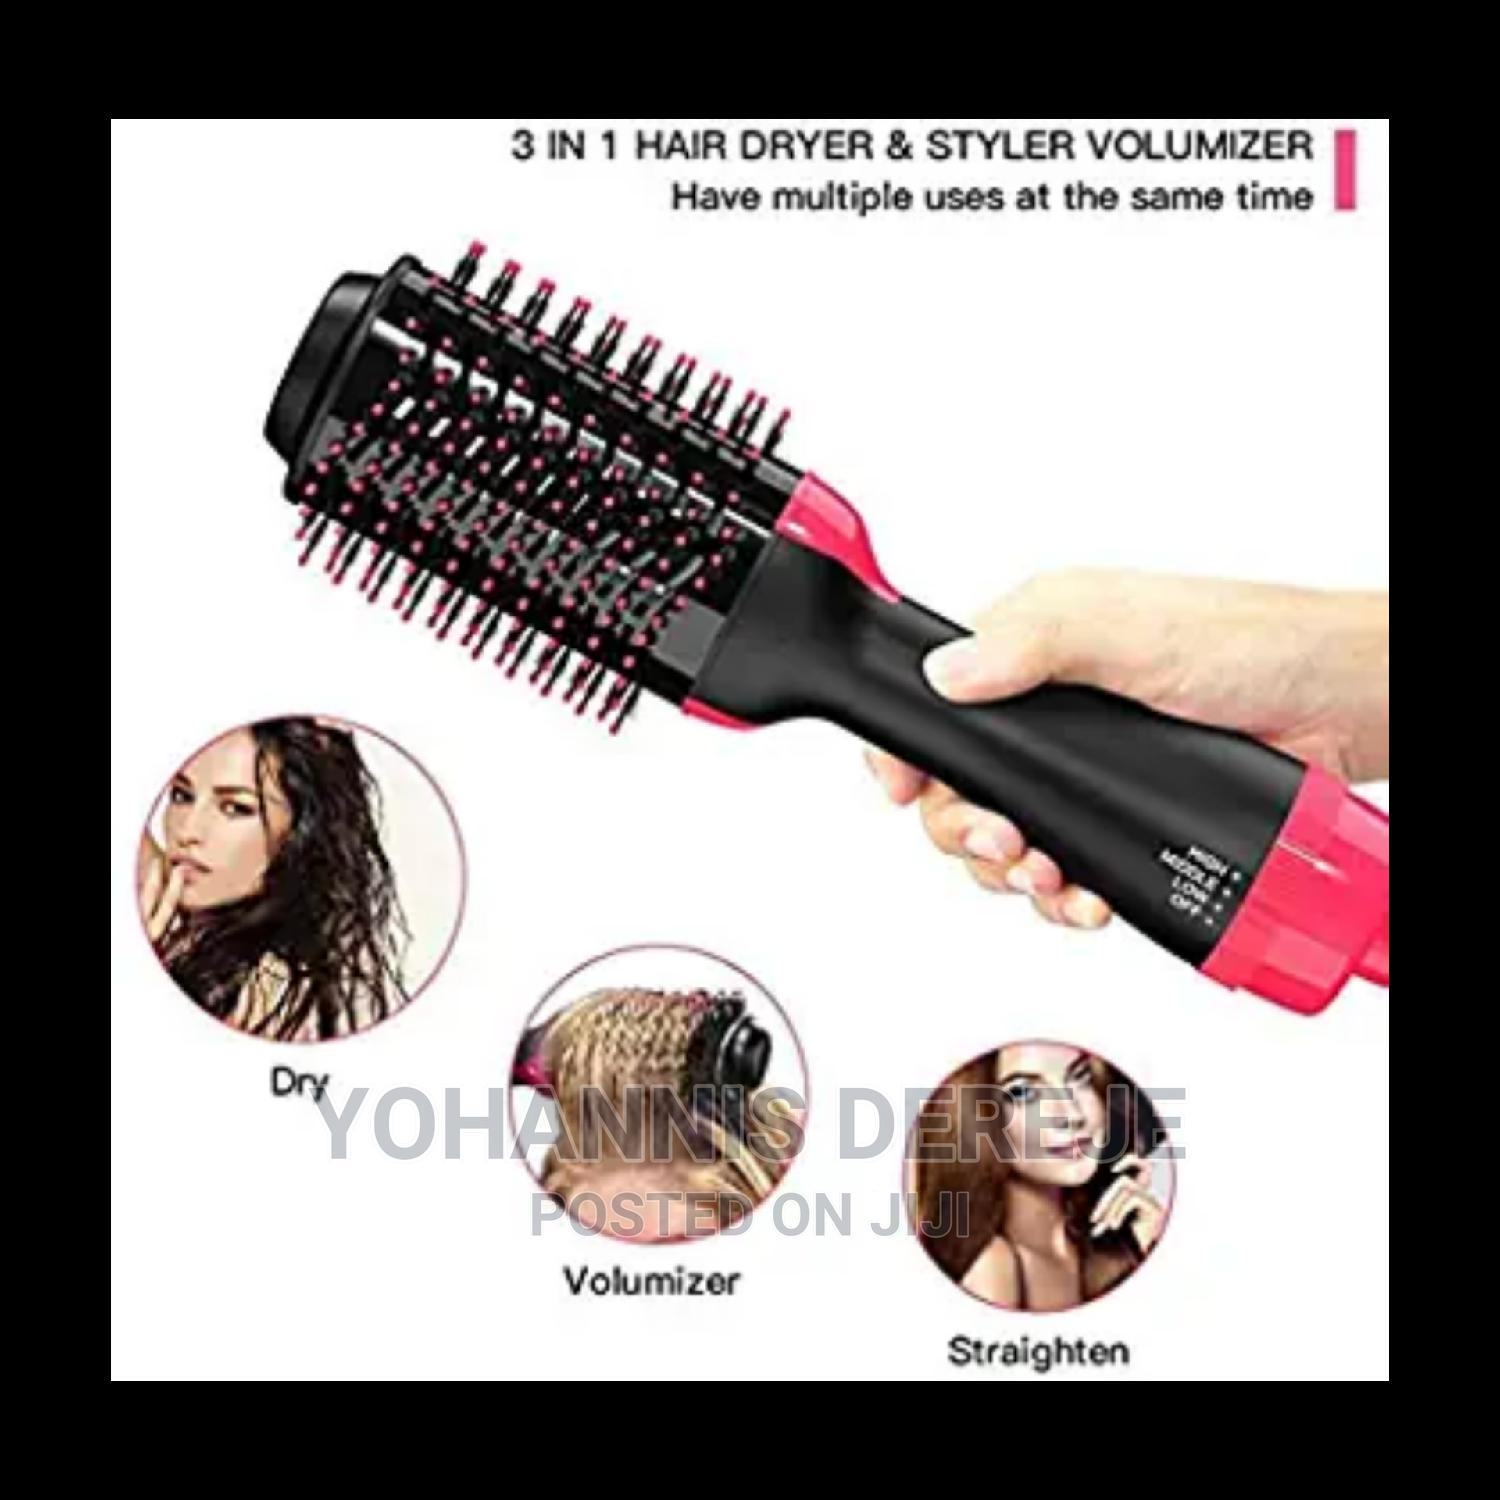 3 in 1 Step Hair Dryer and Styler